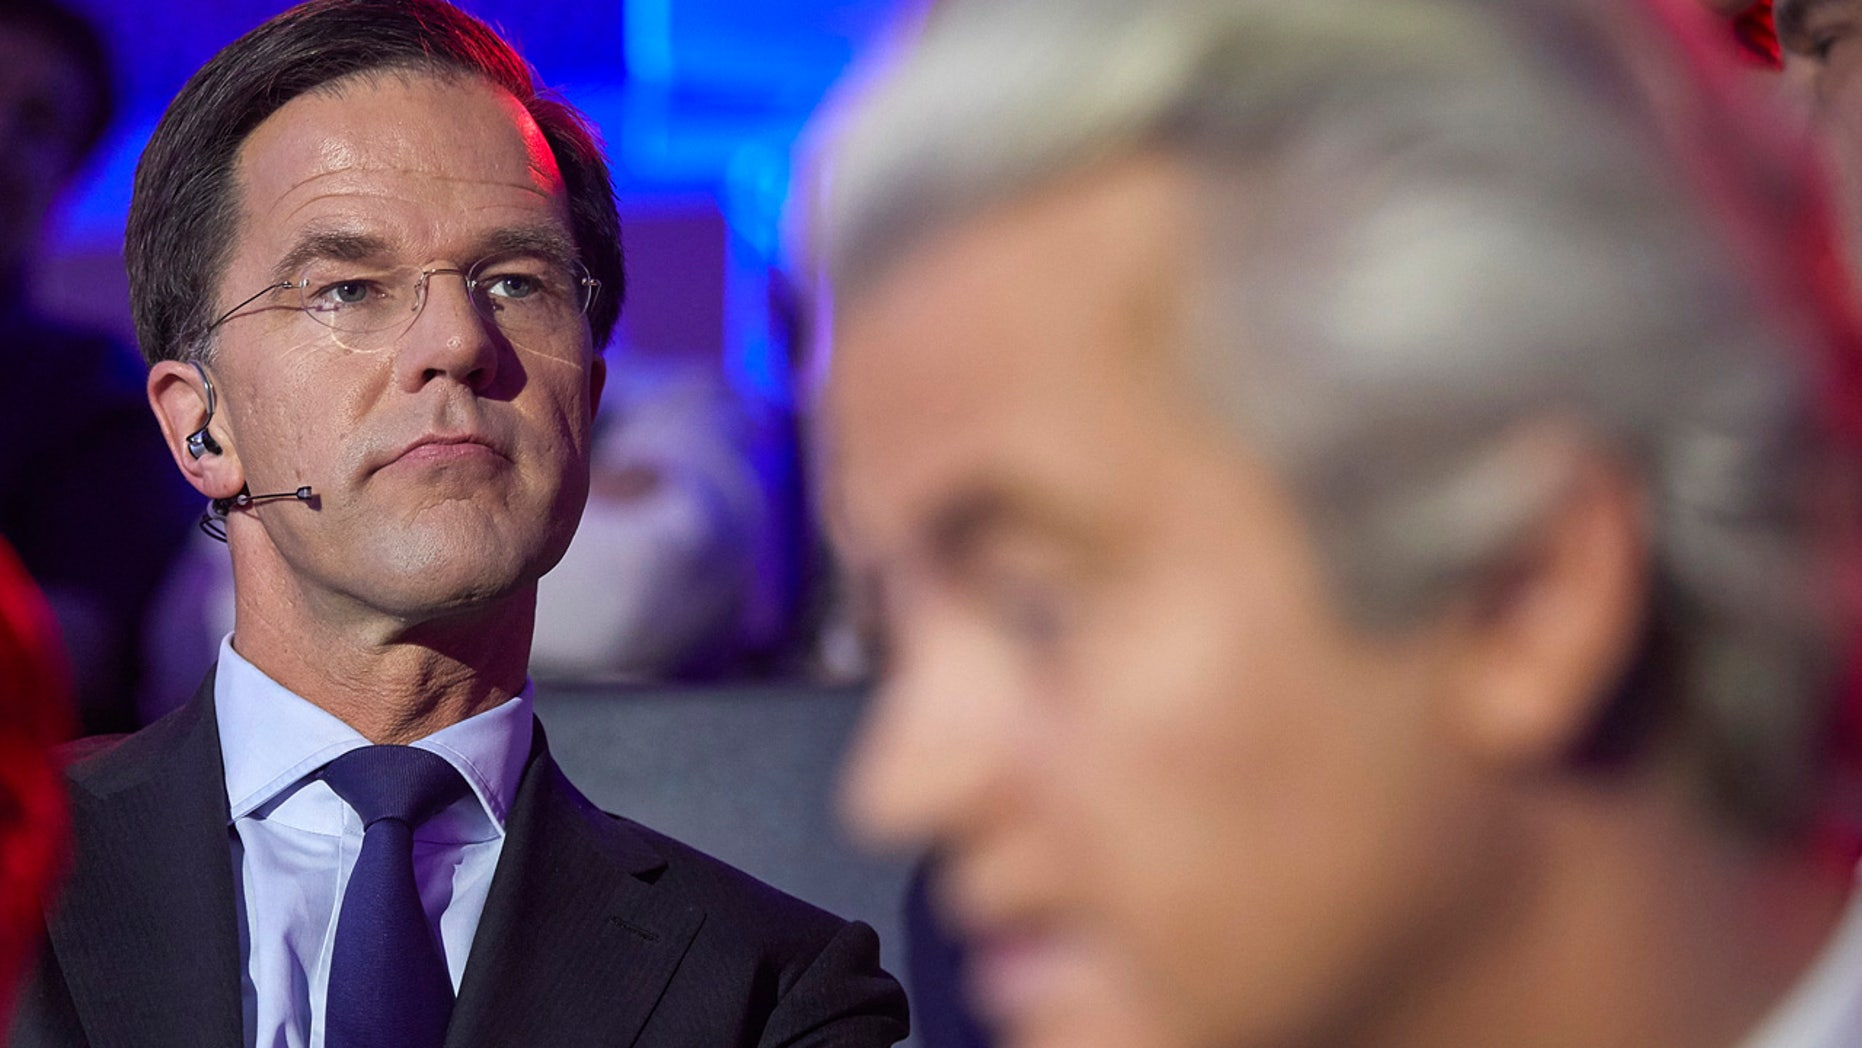 Dutch Prime Minister Mark Rutte, left, and PVV party leader Geert Wilders, right, wait to take their turn in the closing debate at parliament in The Hague, Netherlands, Tuesday, March 14, 2017.